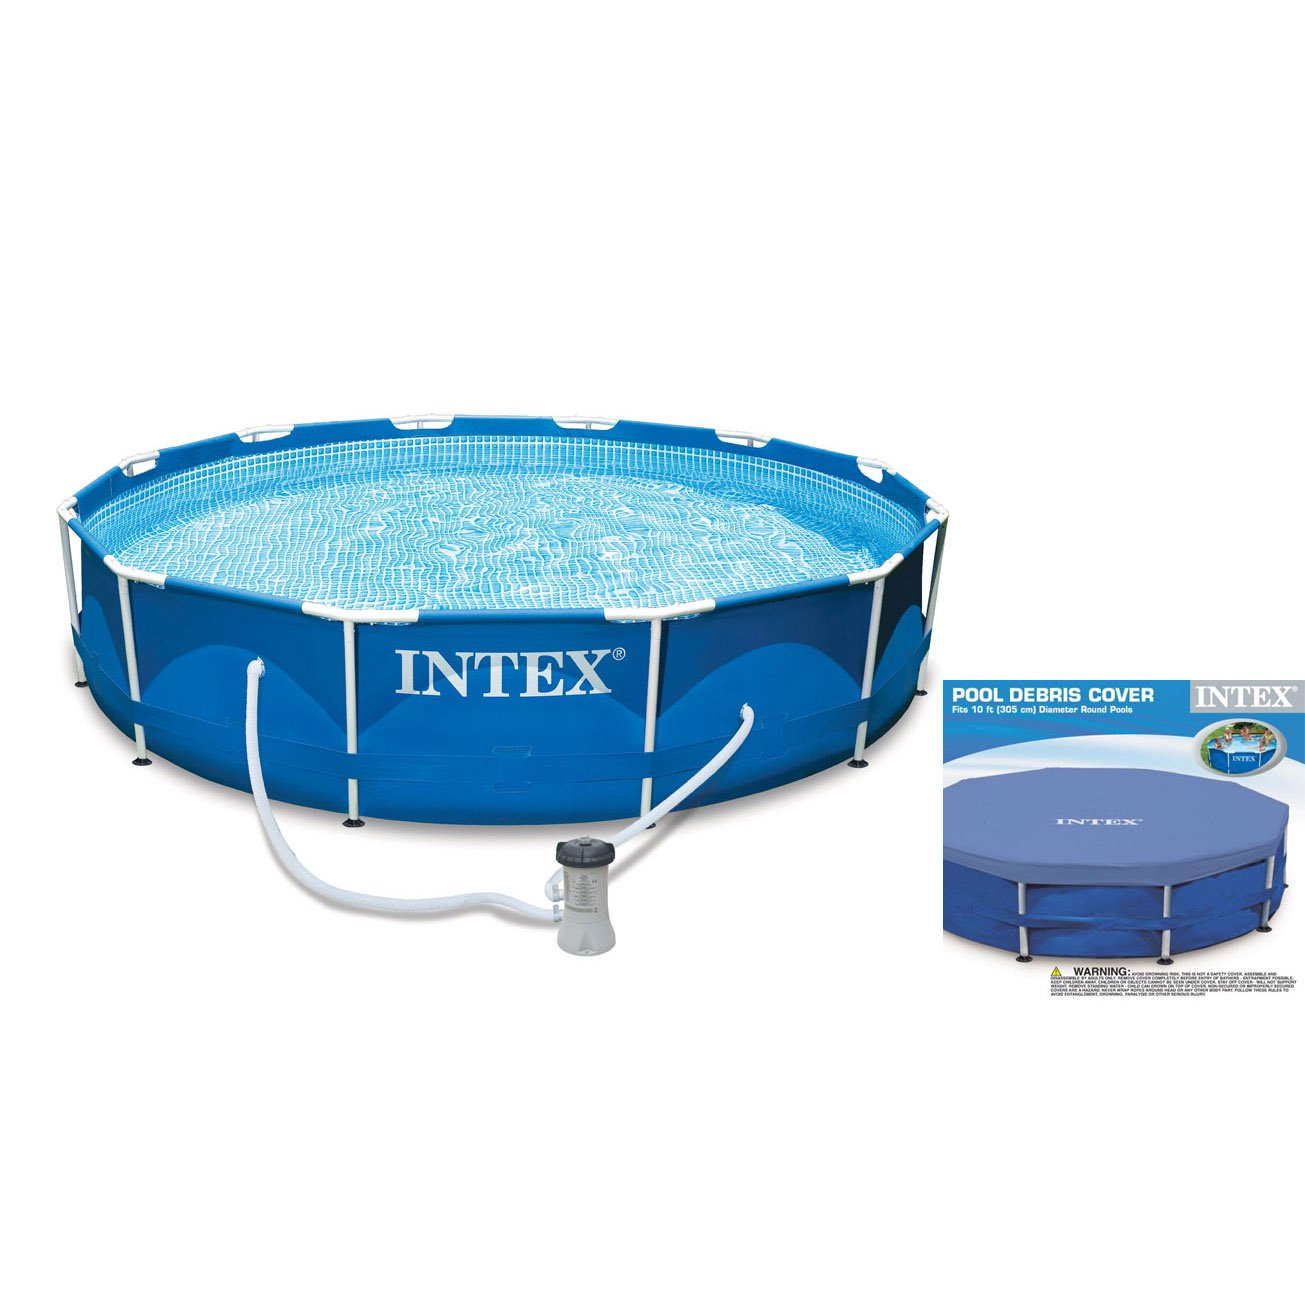 Intex 10 x 2.5 Foot Metal Frame Swimming Pool Set w/ Filter Pump + Debris Cover